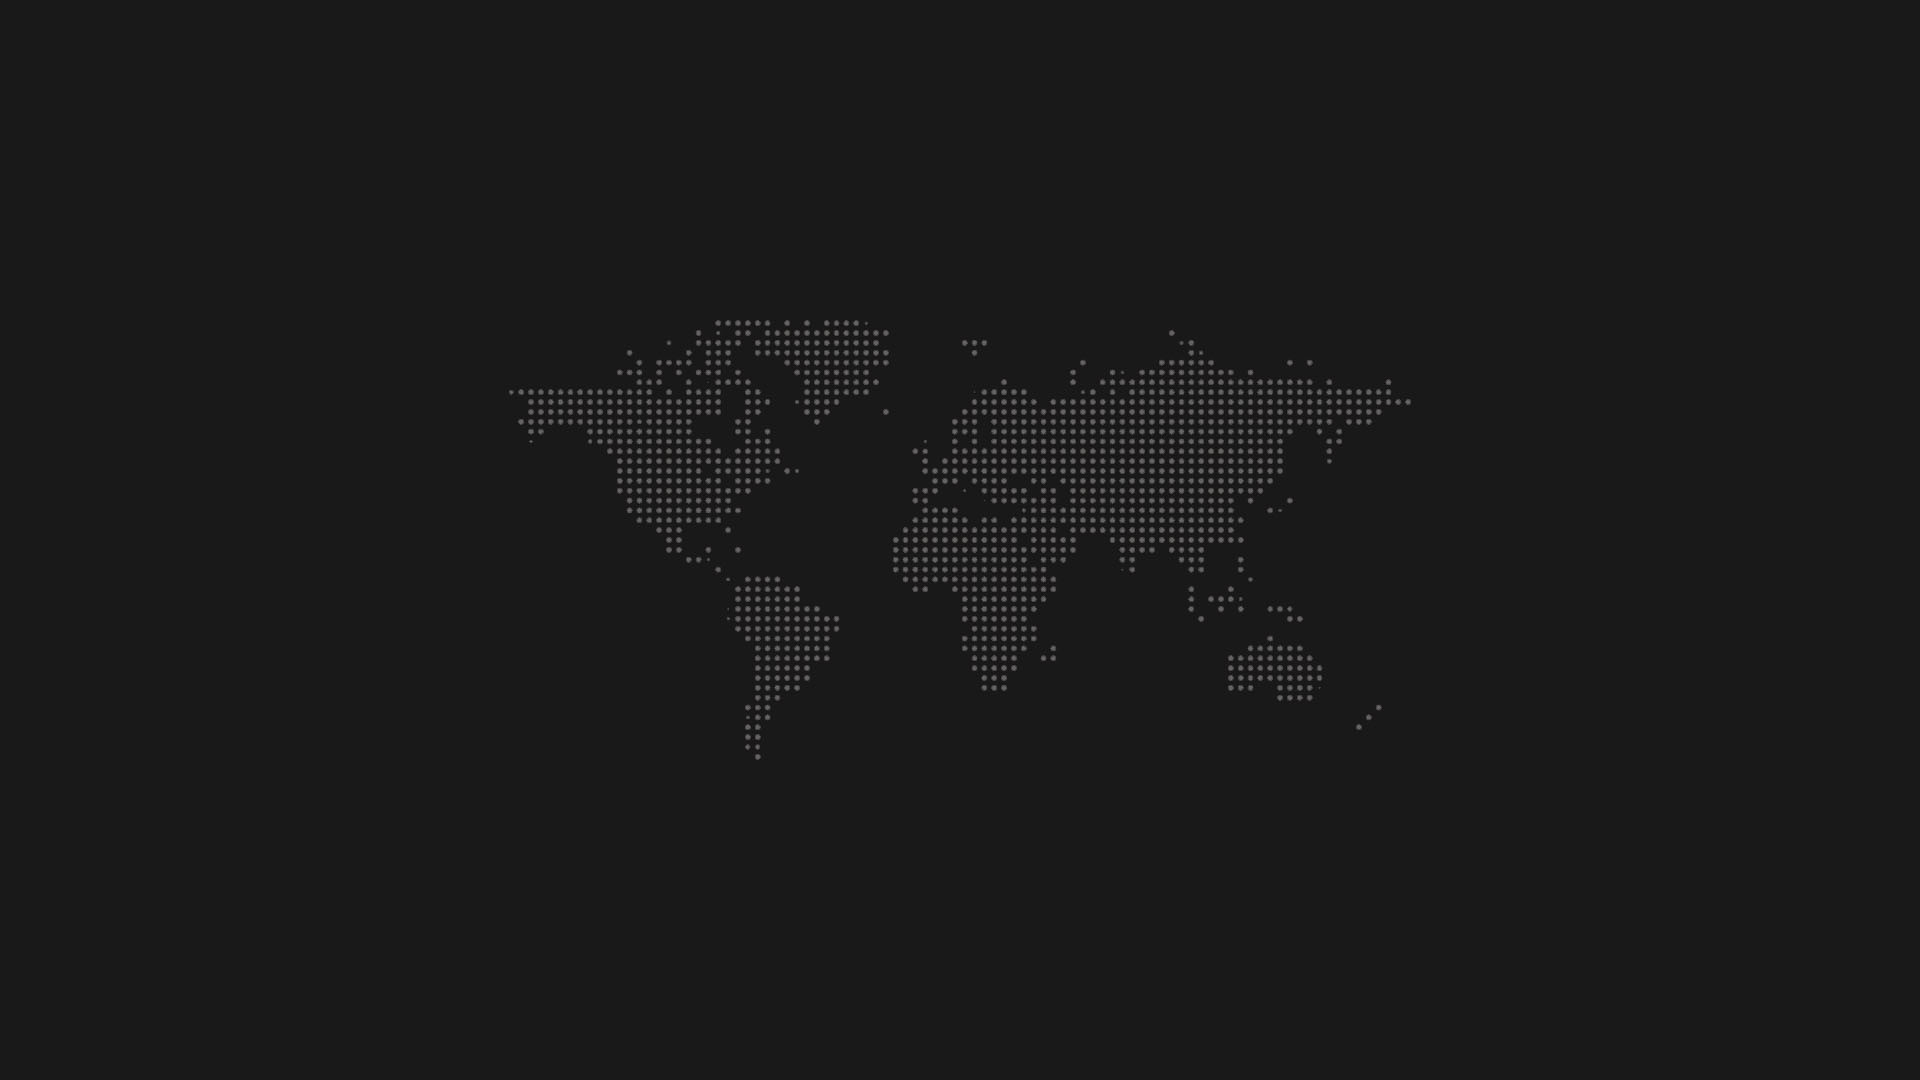 World map wallpapers 68 pictures 1920x1080 1920x1080 pc laptop world map wallpapers guanchaoge gumiabroncs Gallery